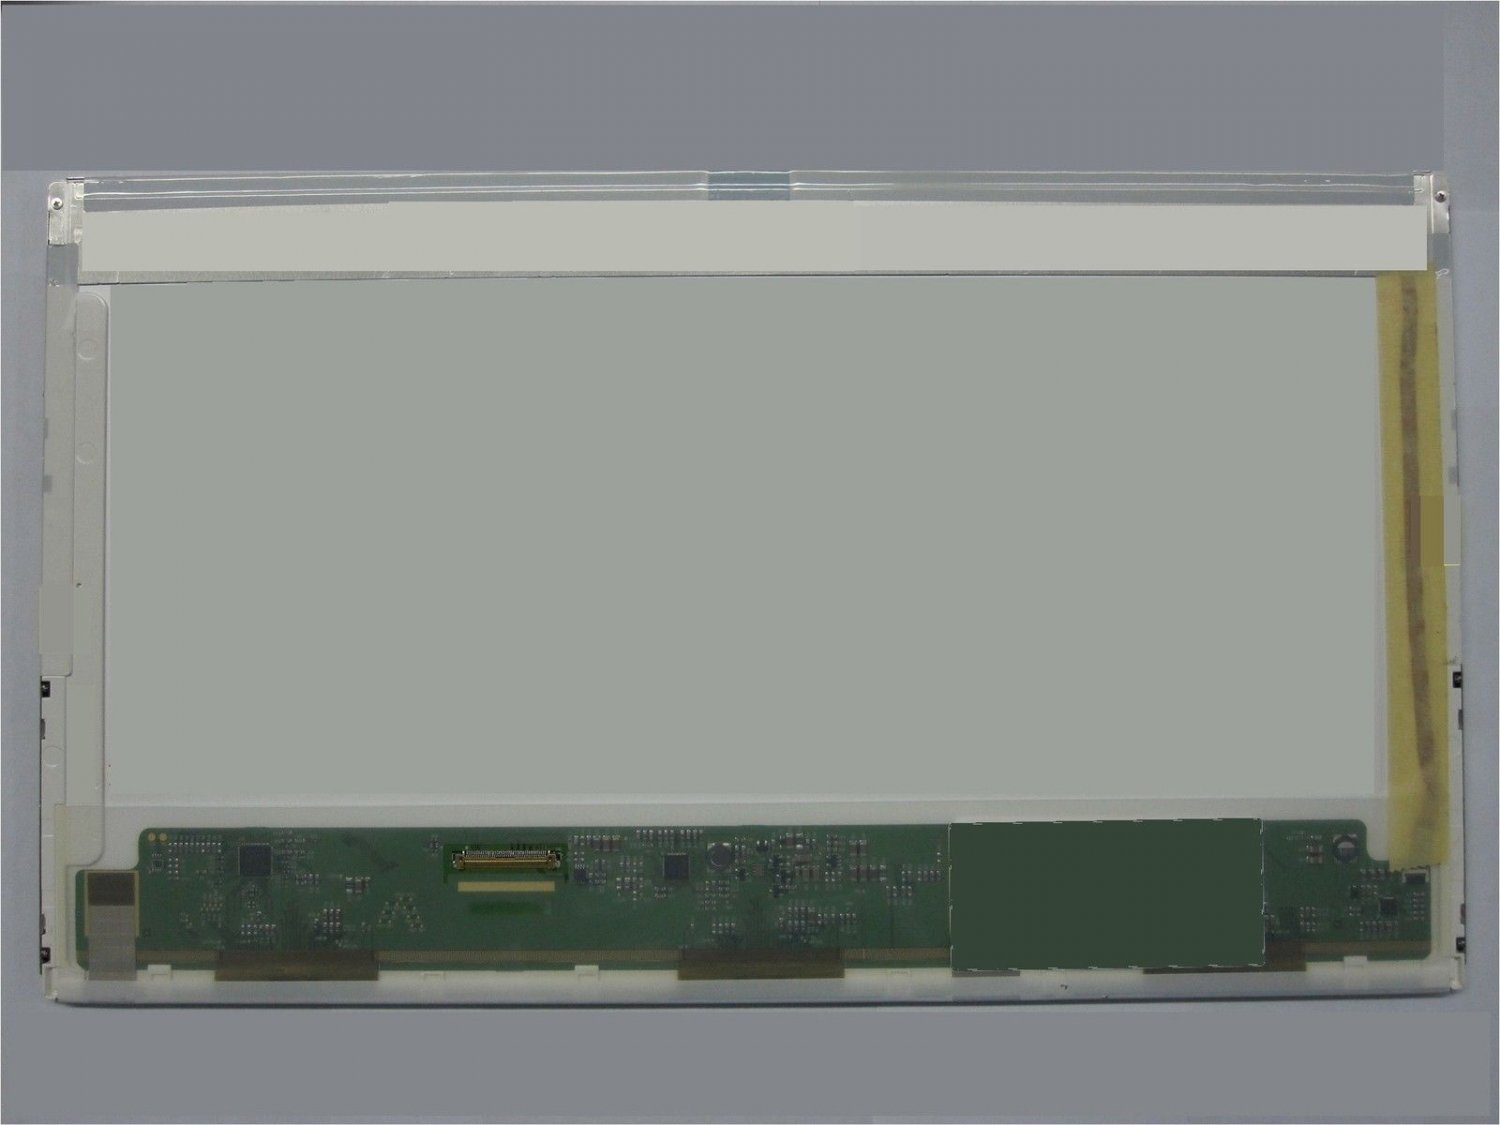 Orignal OEM LCD SCREEN FOR TOSHIBA SATELLITE P755-S5265 15.6""